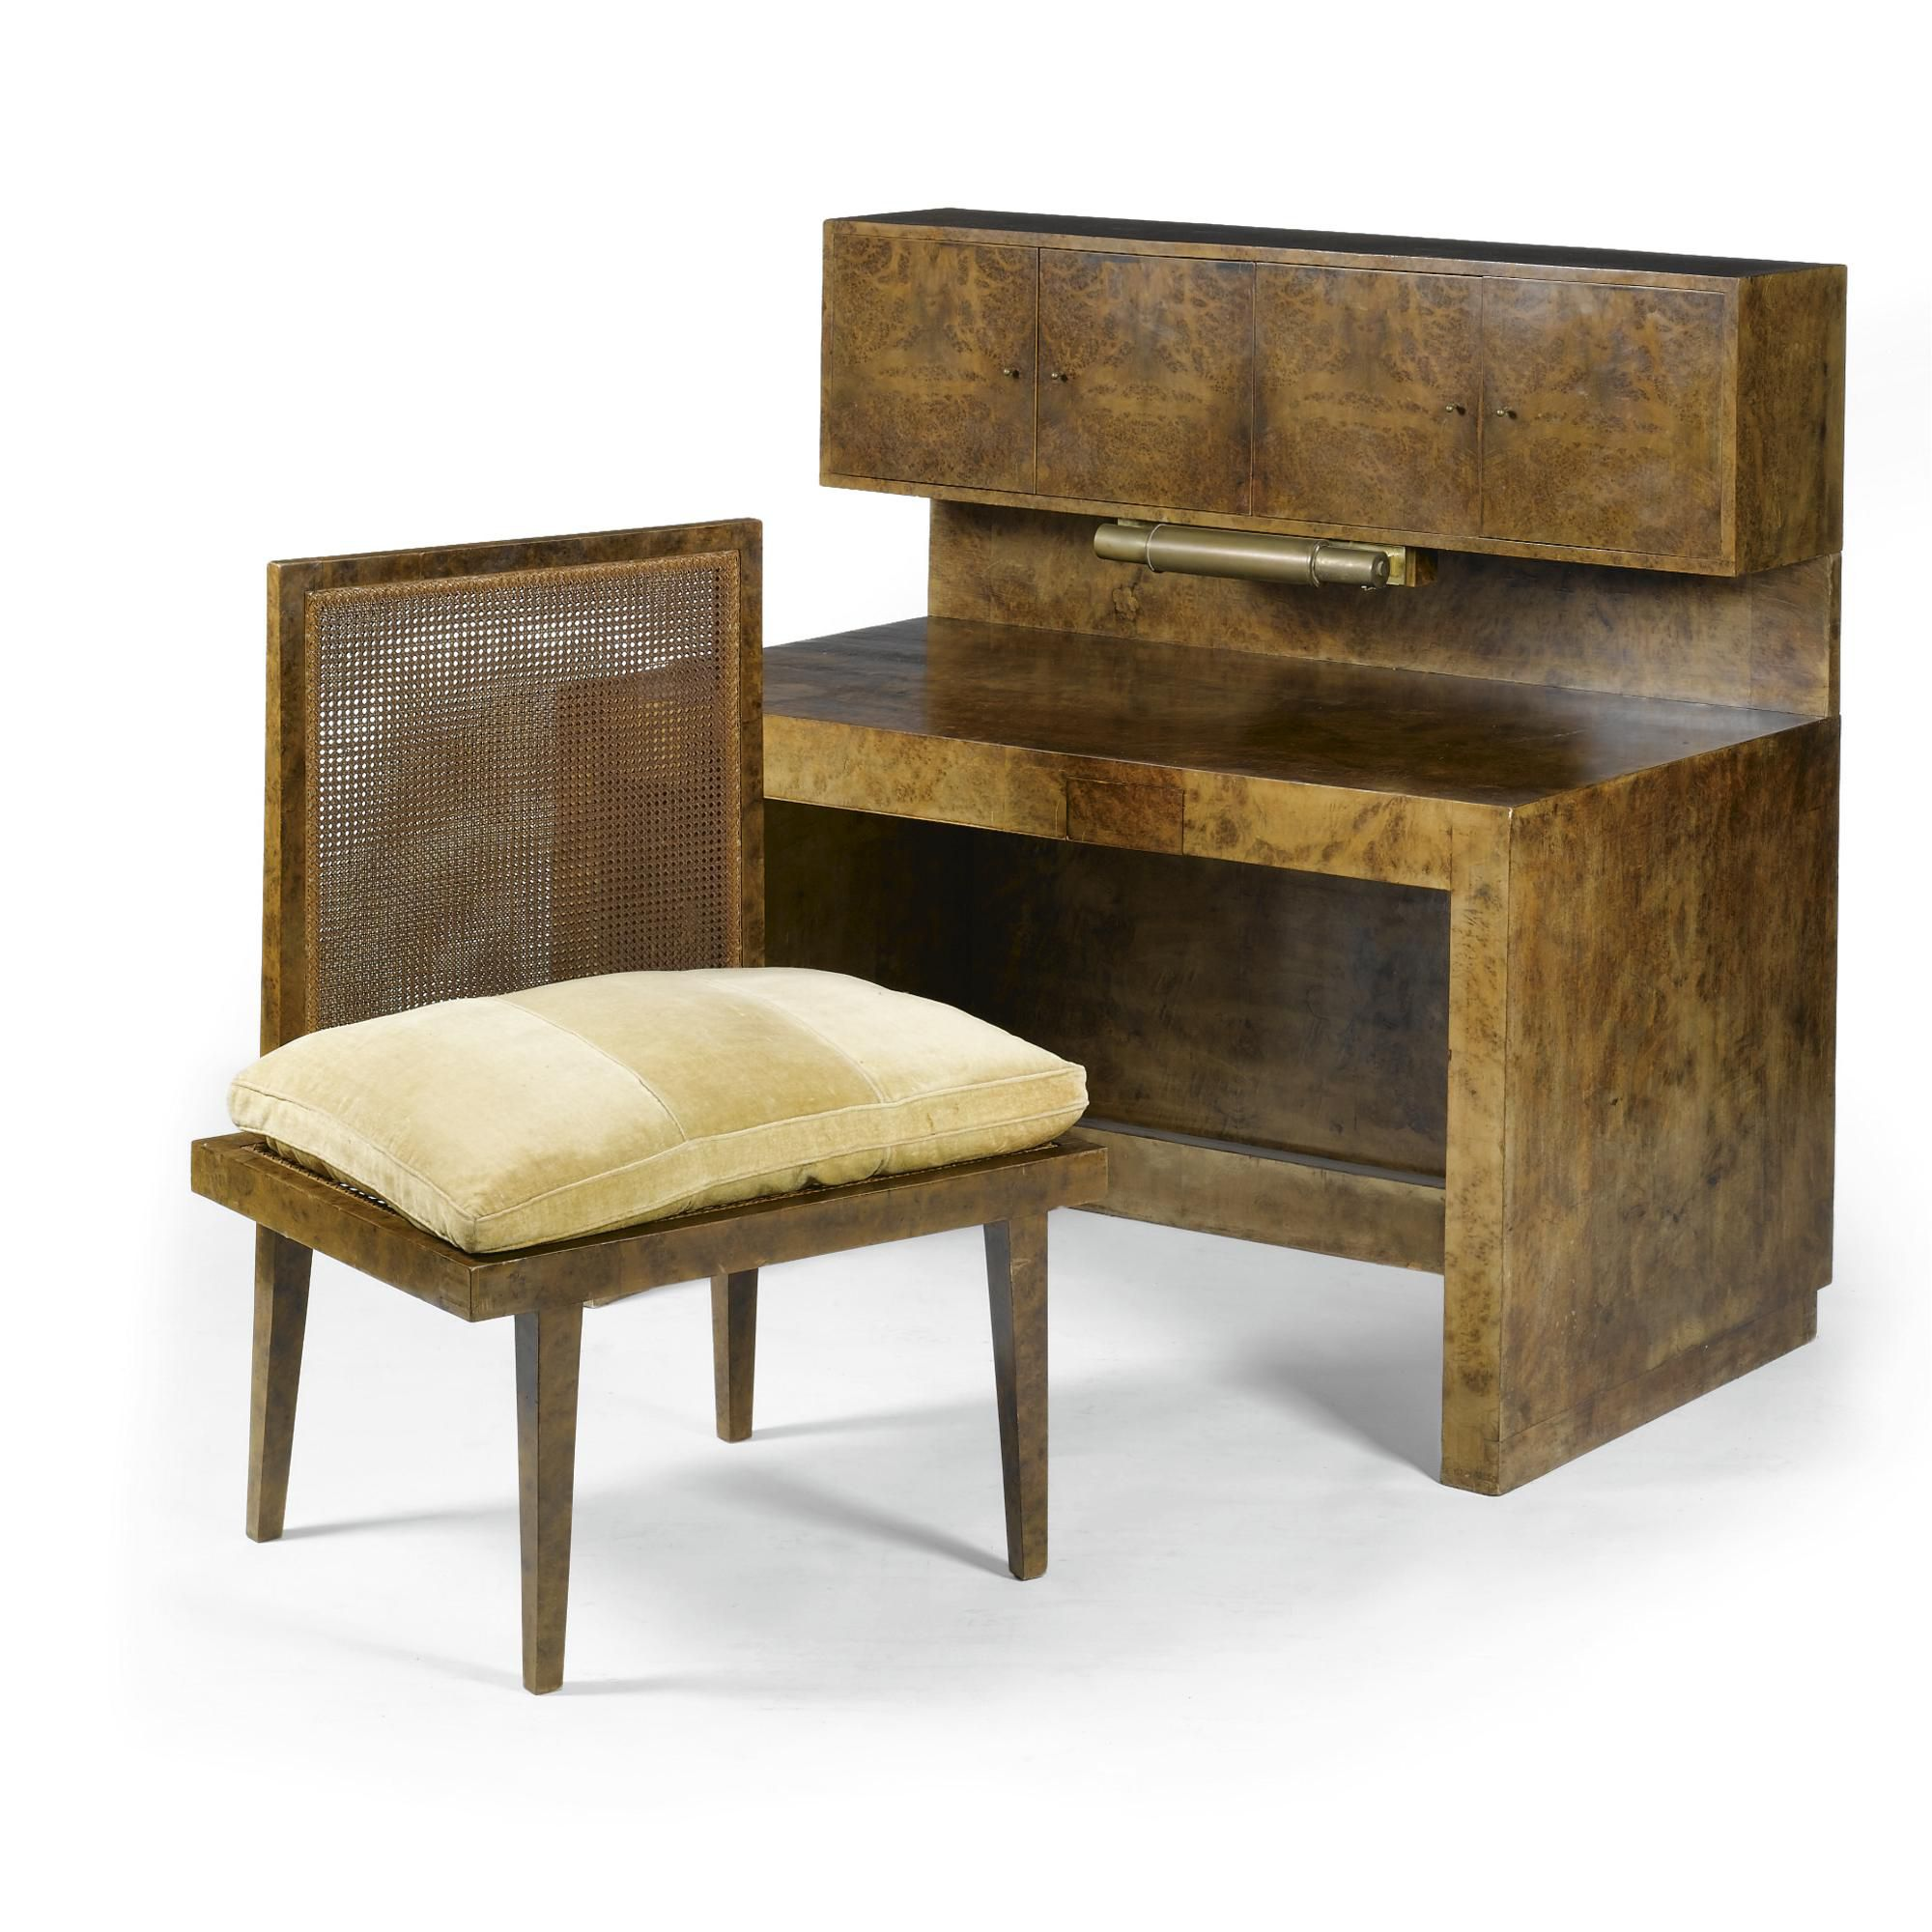 JOHANNES ITTEN (1888 - 1967) A DESK AND CHAIR burr walnut veneer, the rectanular desk with an inbuild drawer to front, the top with a cabinet enclosing pigeon holes and drawers, with reading light; together with a wide side chair with cushion desk: 75cm. long by 135cm. wide by 80cm. deep; cabinet: 35cm. high by 135cm. wide by 28cm. deep; 2ft 5½in., 4ft 5 1/8 in., 2ft 7½in.; 1ft 1¾in., 4ft 5 1/8 in., 11in. 1928 - 1930